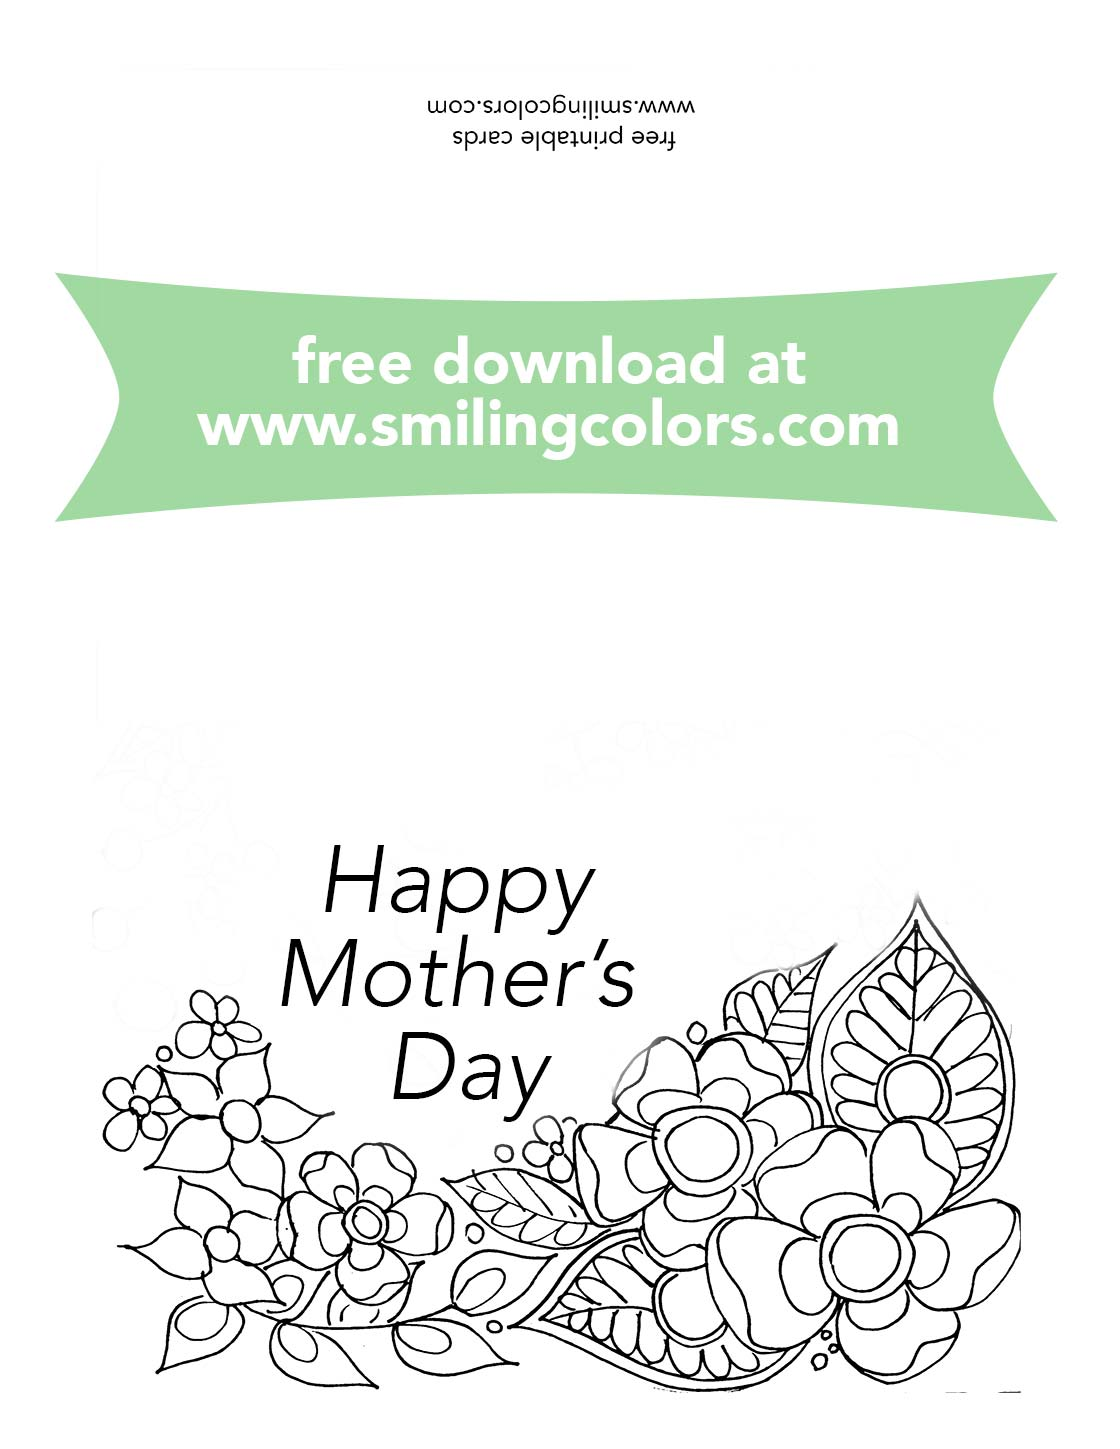 Mothers day coloring cards, FREE to print and color now